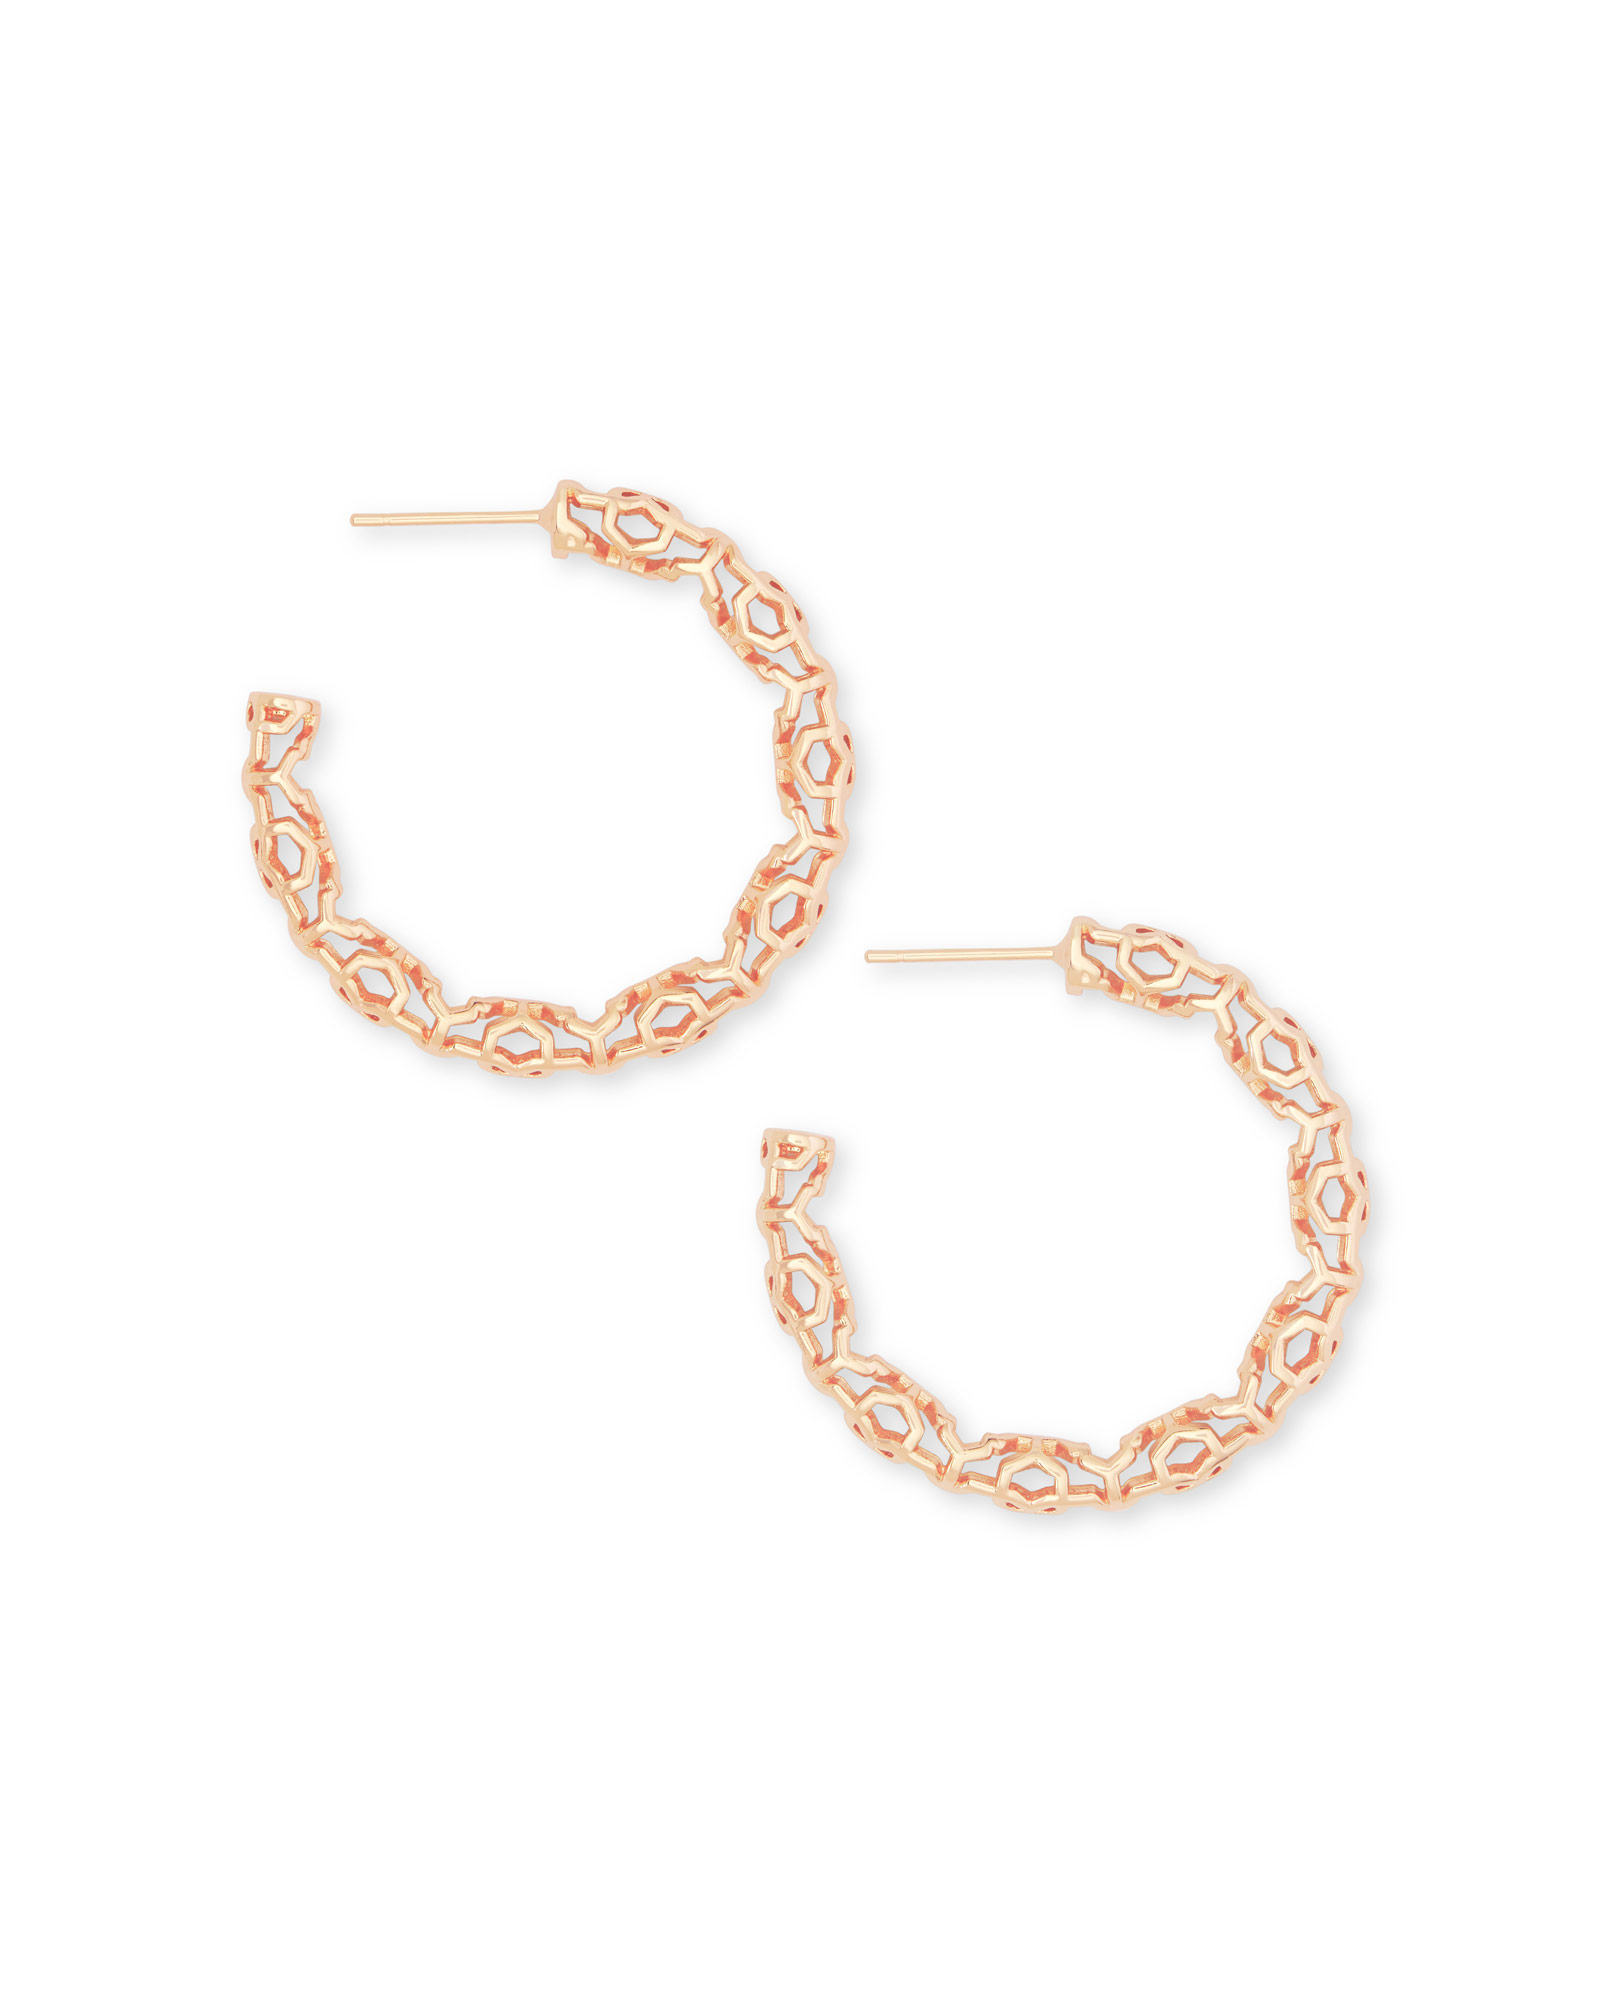 Maggie Small Hoop Earrings in Rose Gold Filigree